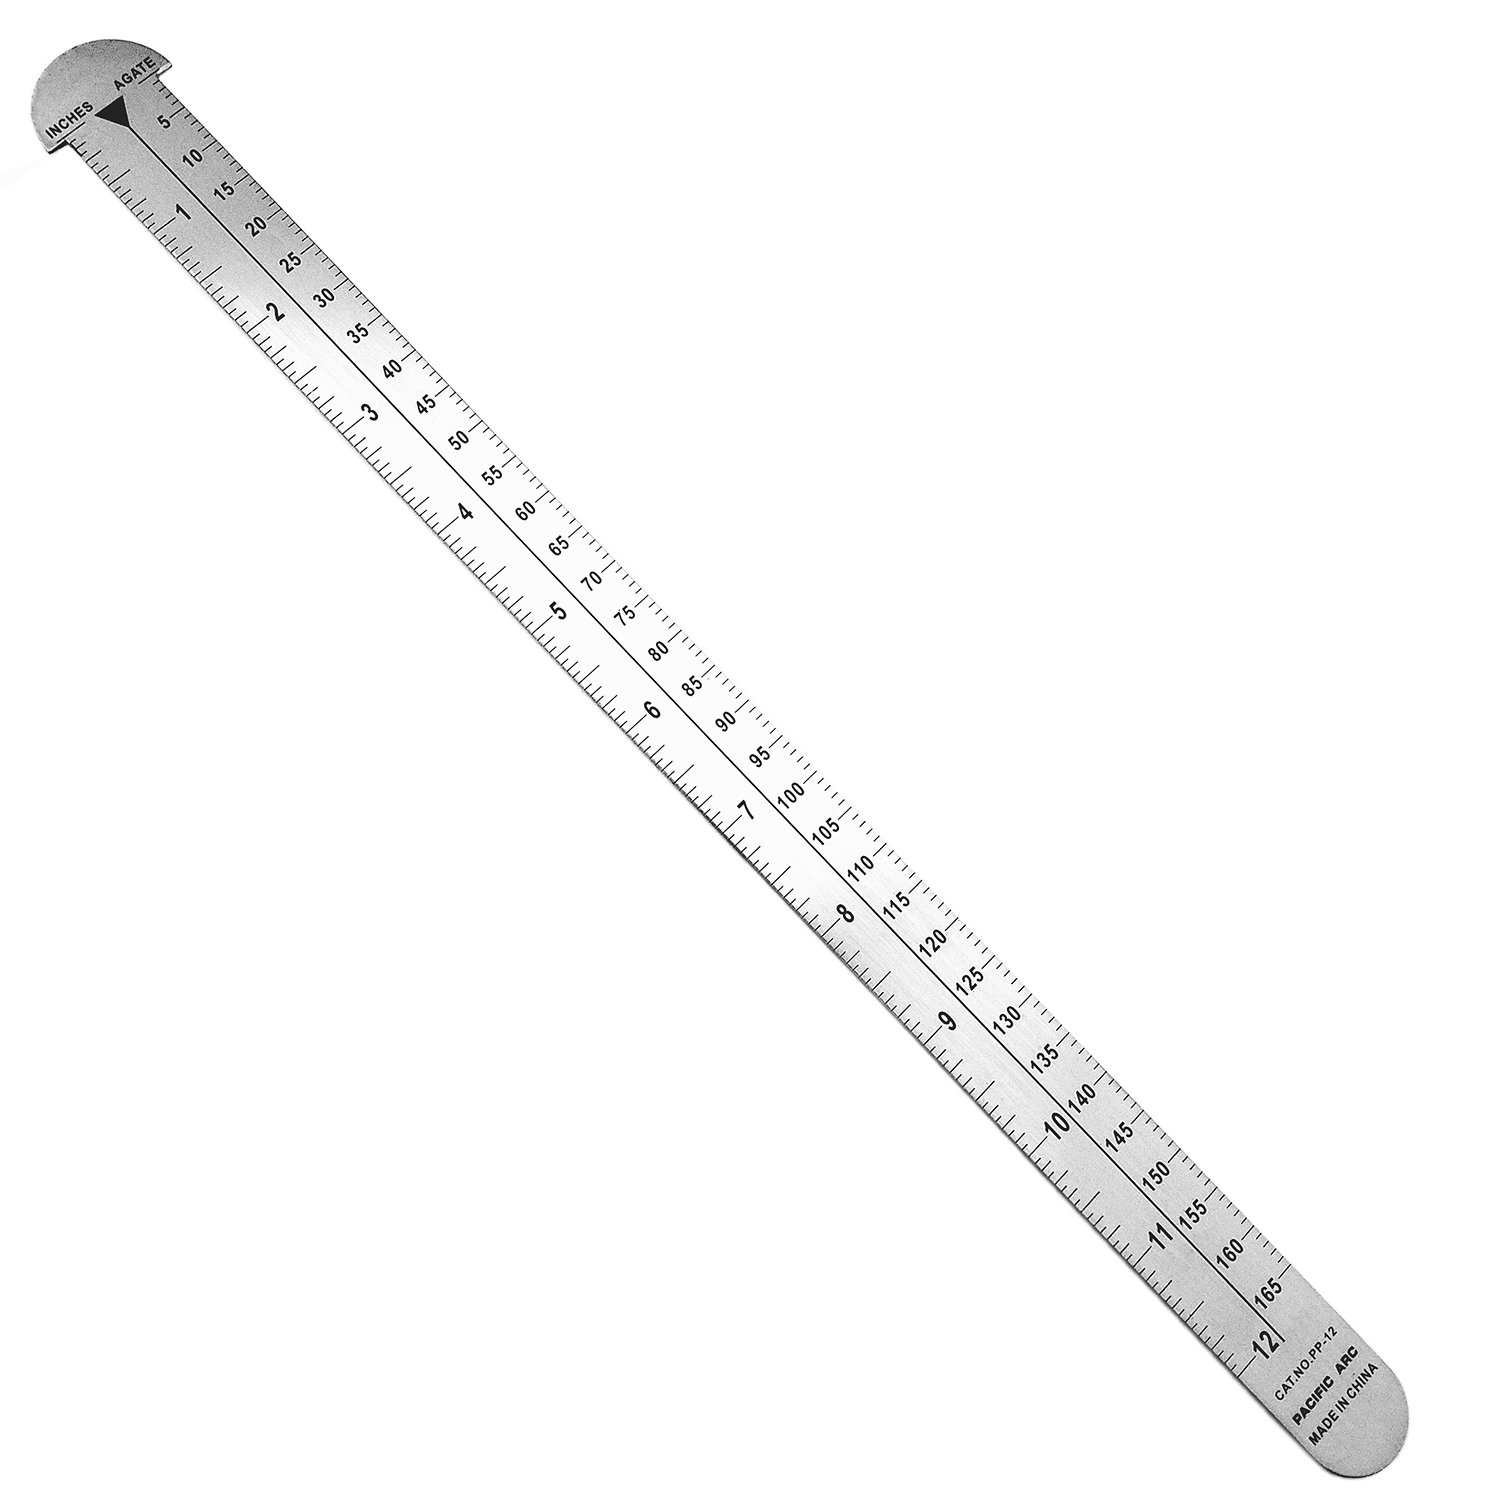 amazon 18 stainless steel pica pole ruler inch and picas 4 X 4 Decals amazon 18 stainless steel pica pole ruler inch and picas office products